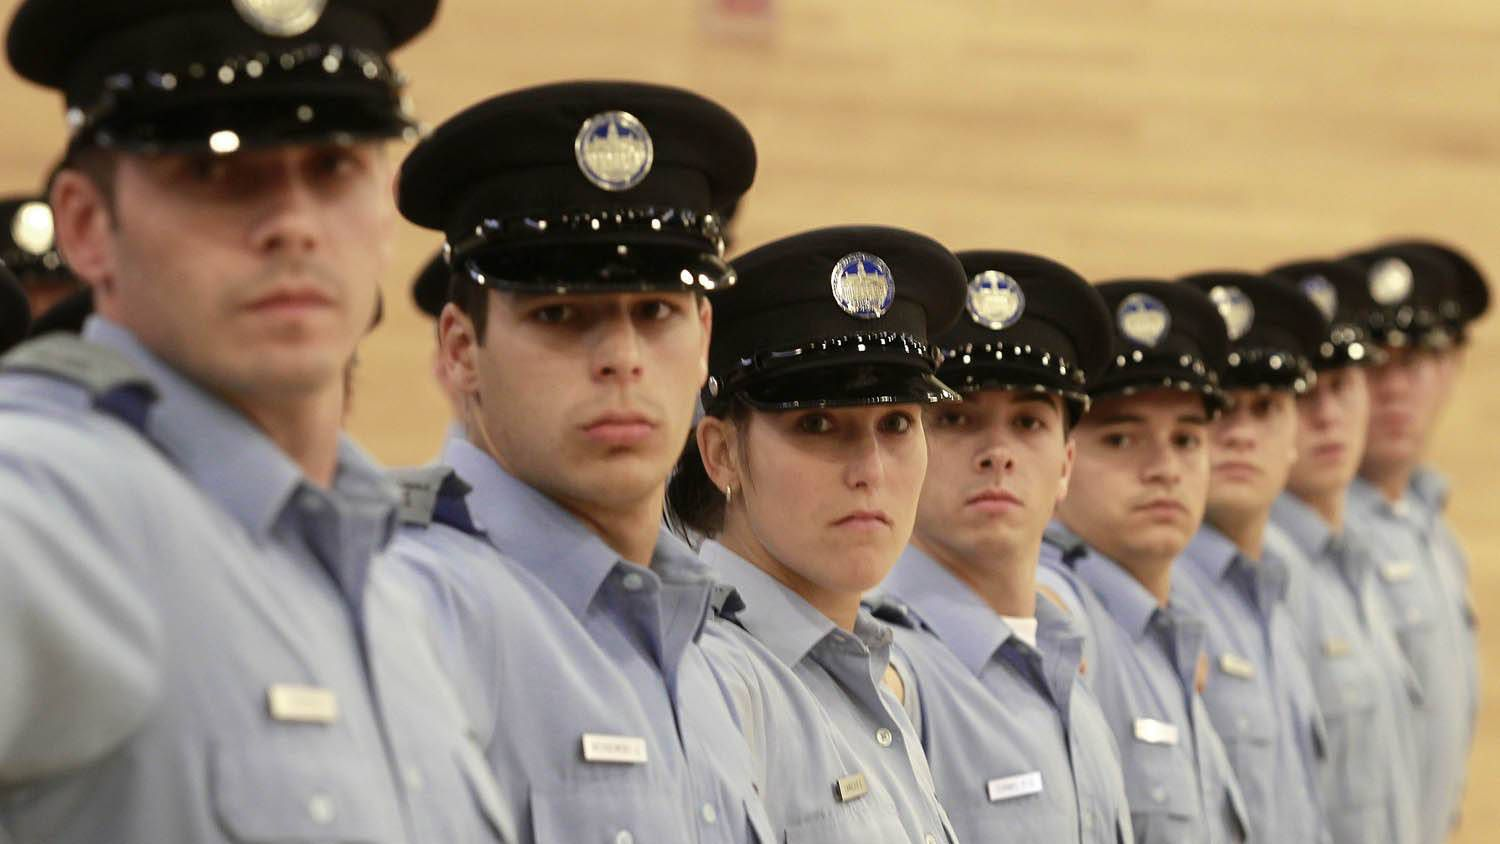 Quebec police cadets subject to 'suitability' testing - The Globe